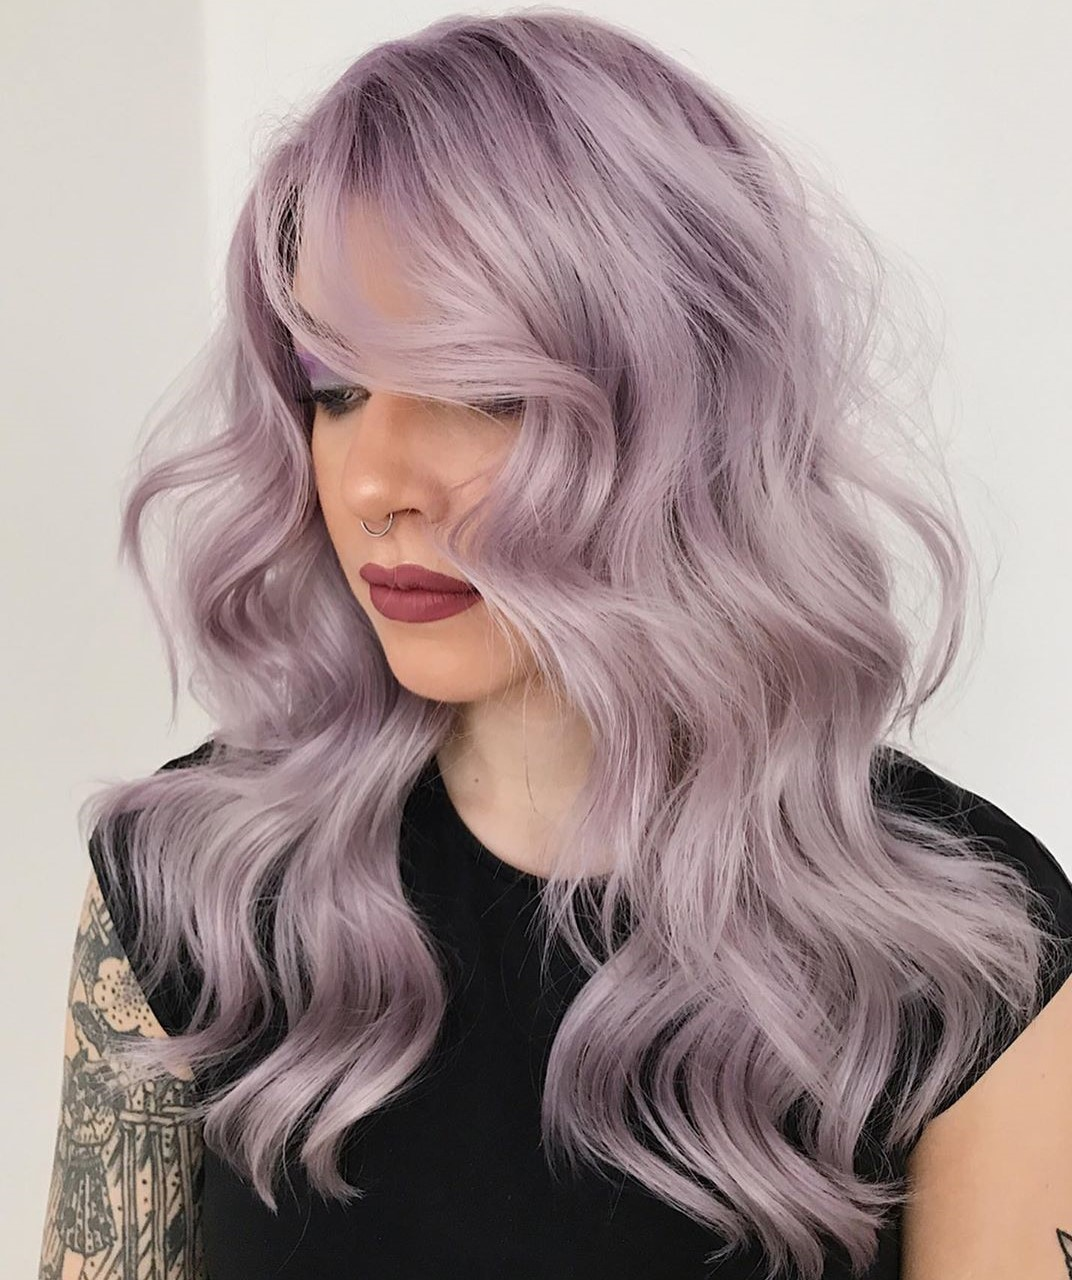 Lavender-Tinted Platinum Blonde Hairstyle